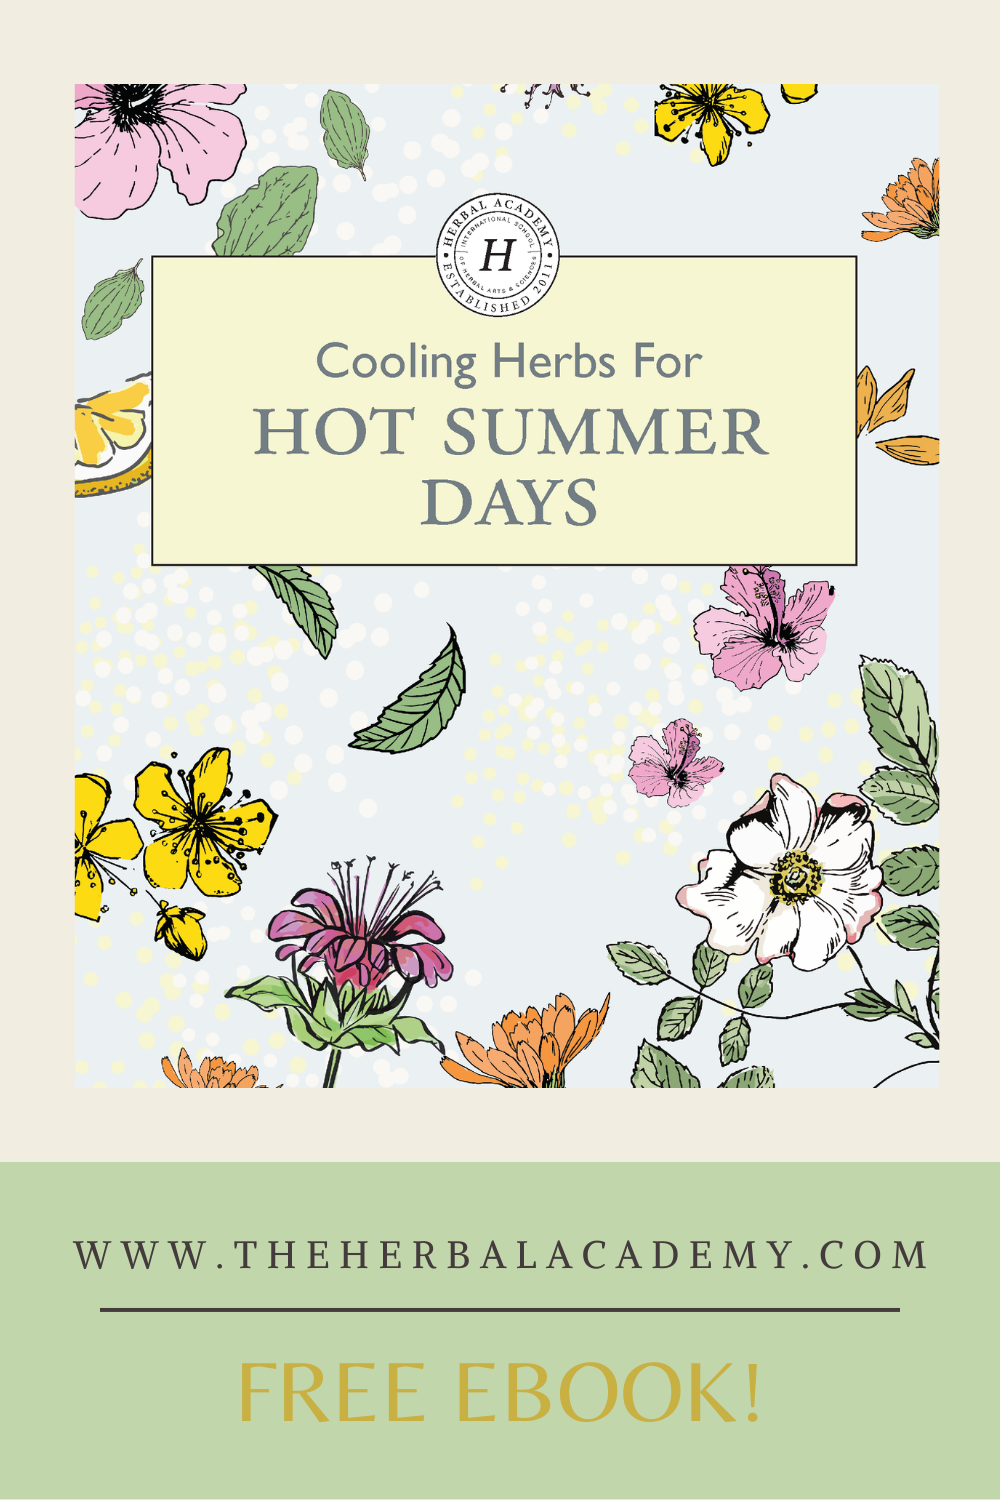 New eBook! Cooling Herbs for Hot Summer Days | Herbal Academy | Herbal Academy's free ebook features plant monographs and simple recipes for seven of the most widely available, cooling herbs of summer.